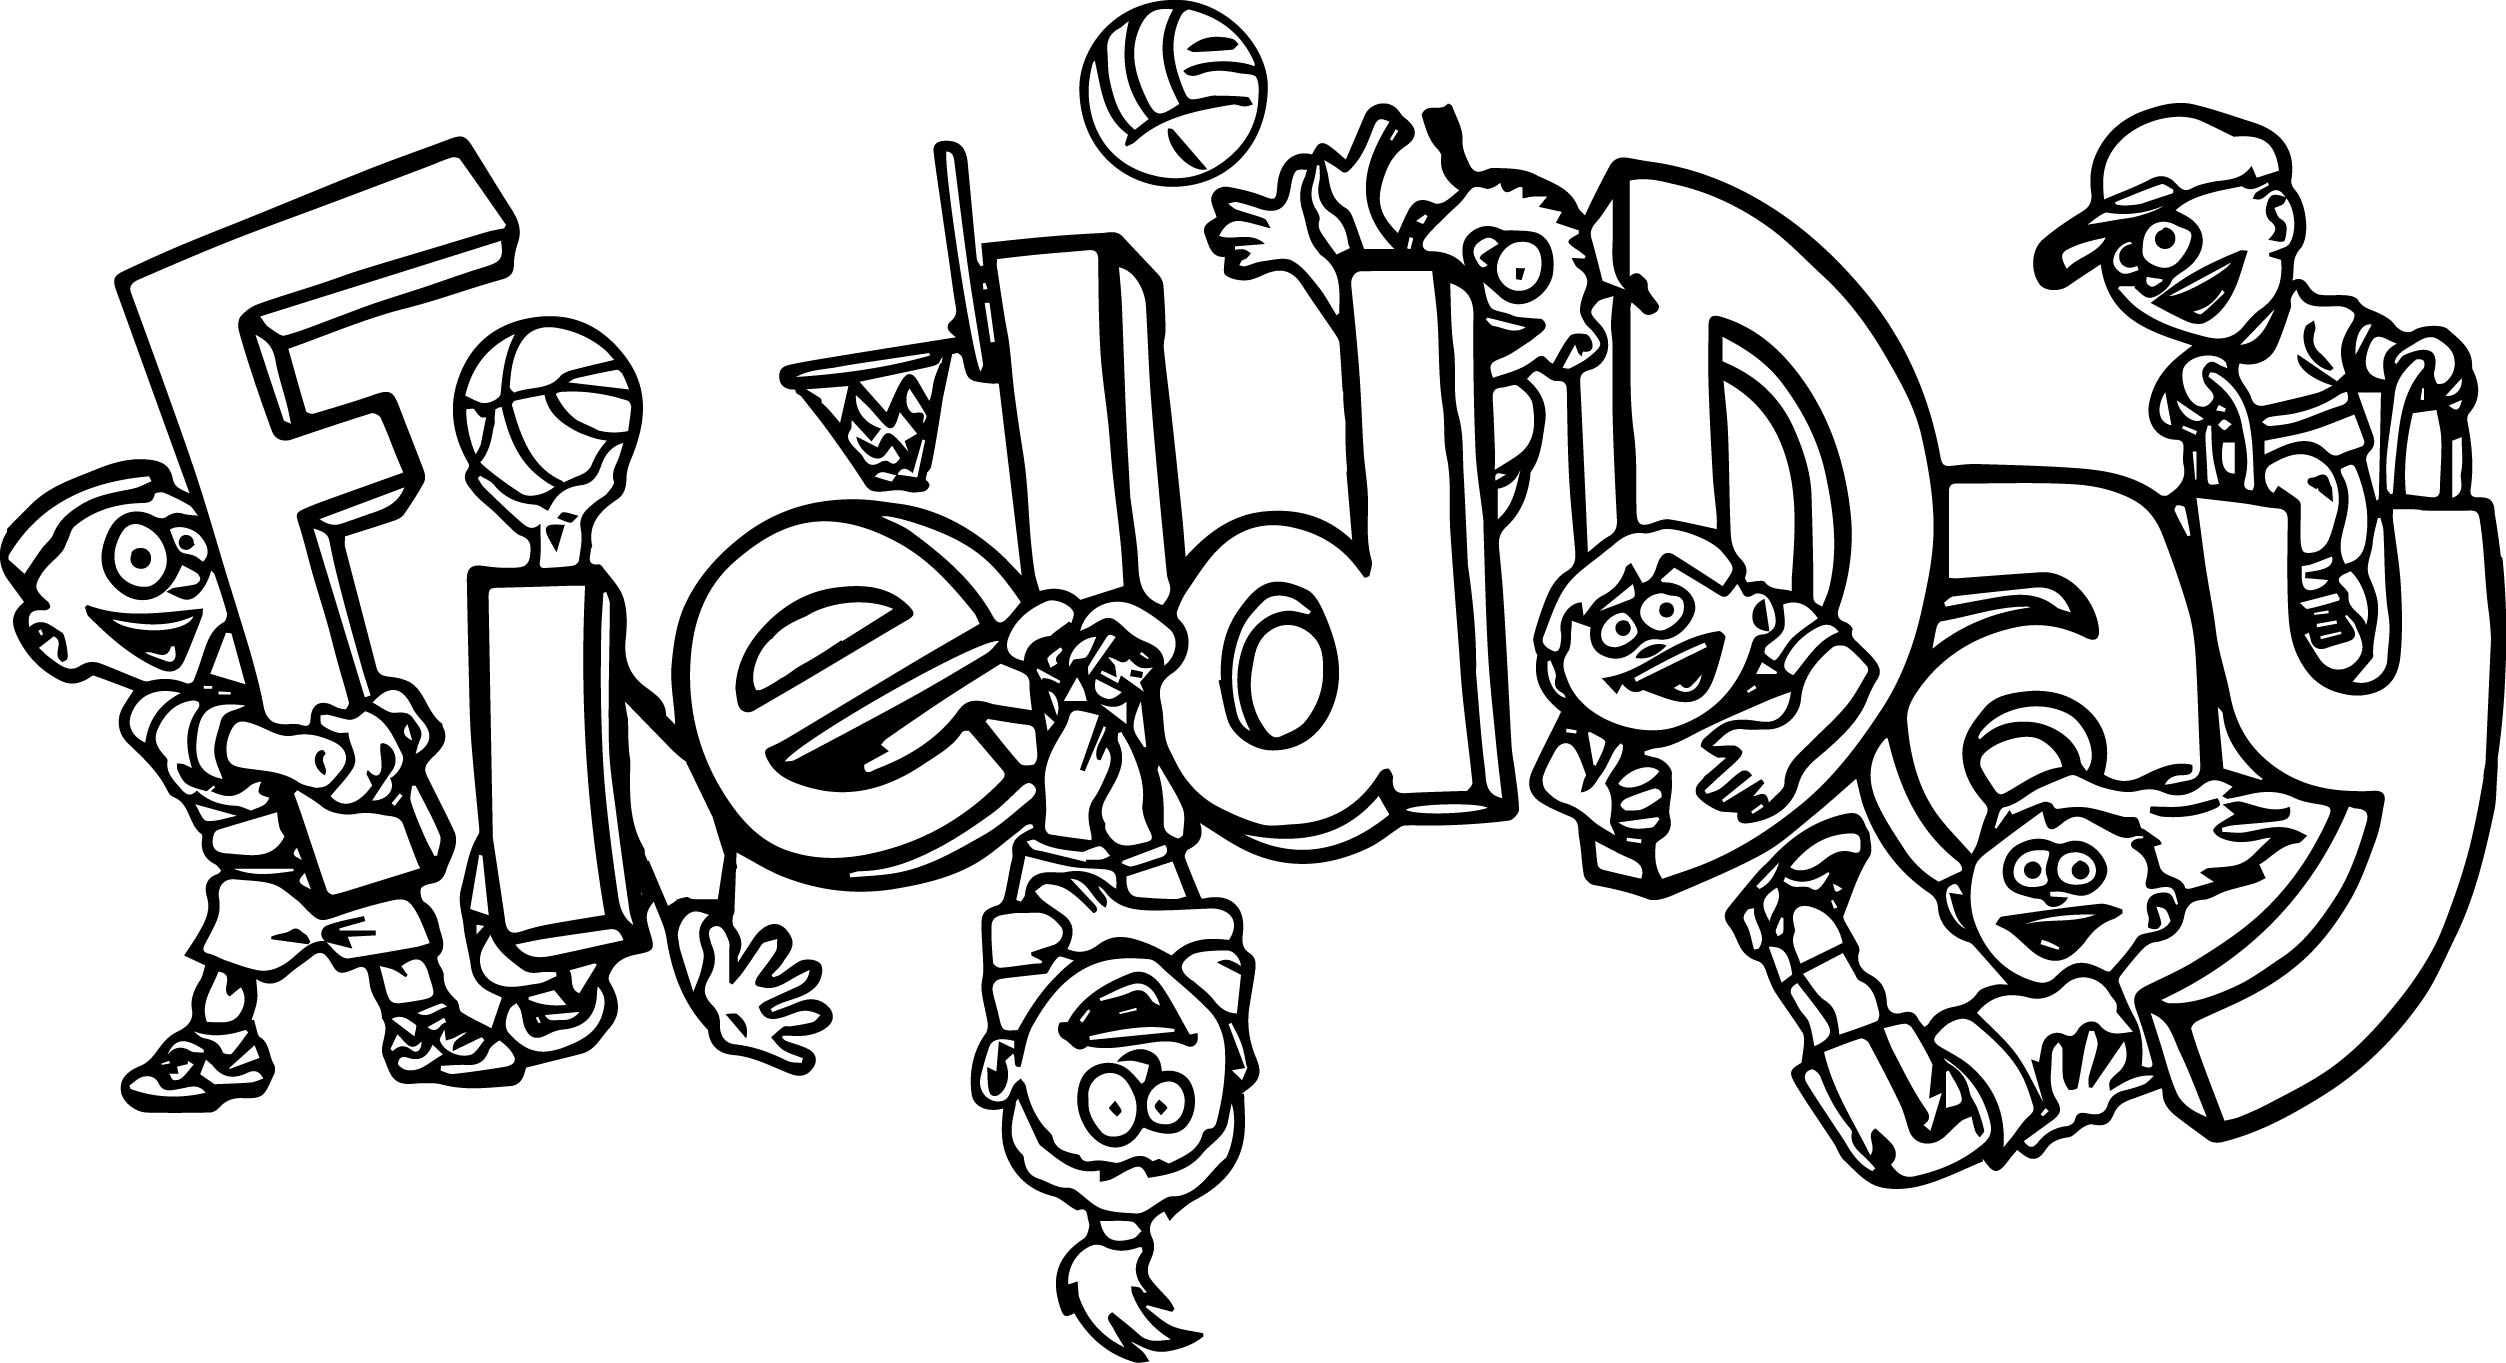 100 days of school field day coloring page - Clifford Puppy Days Coloring Pages